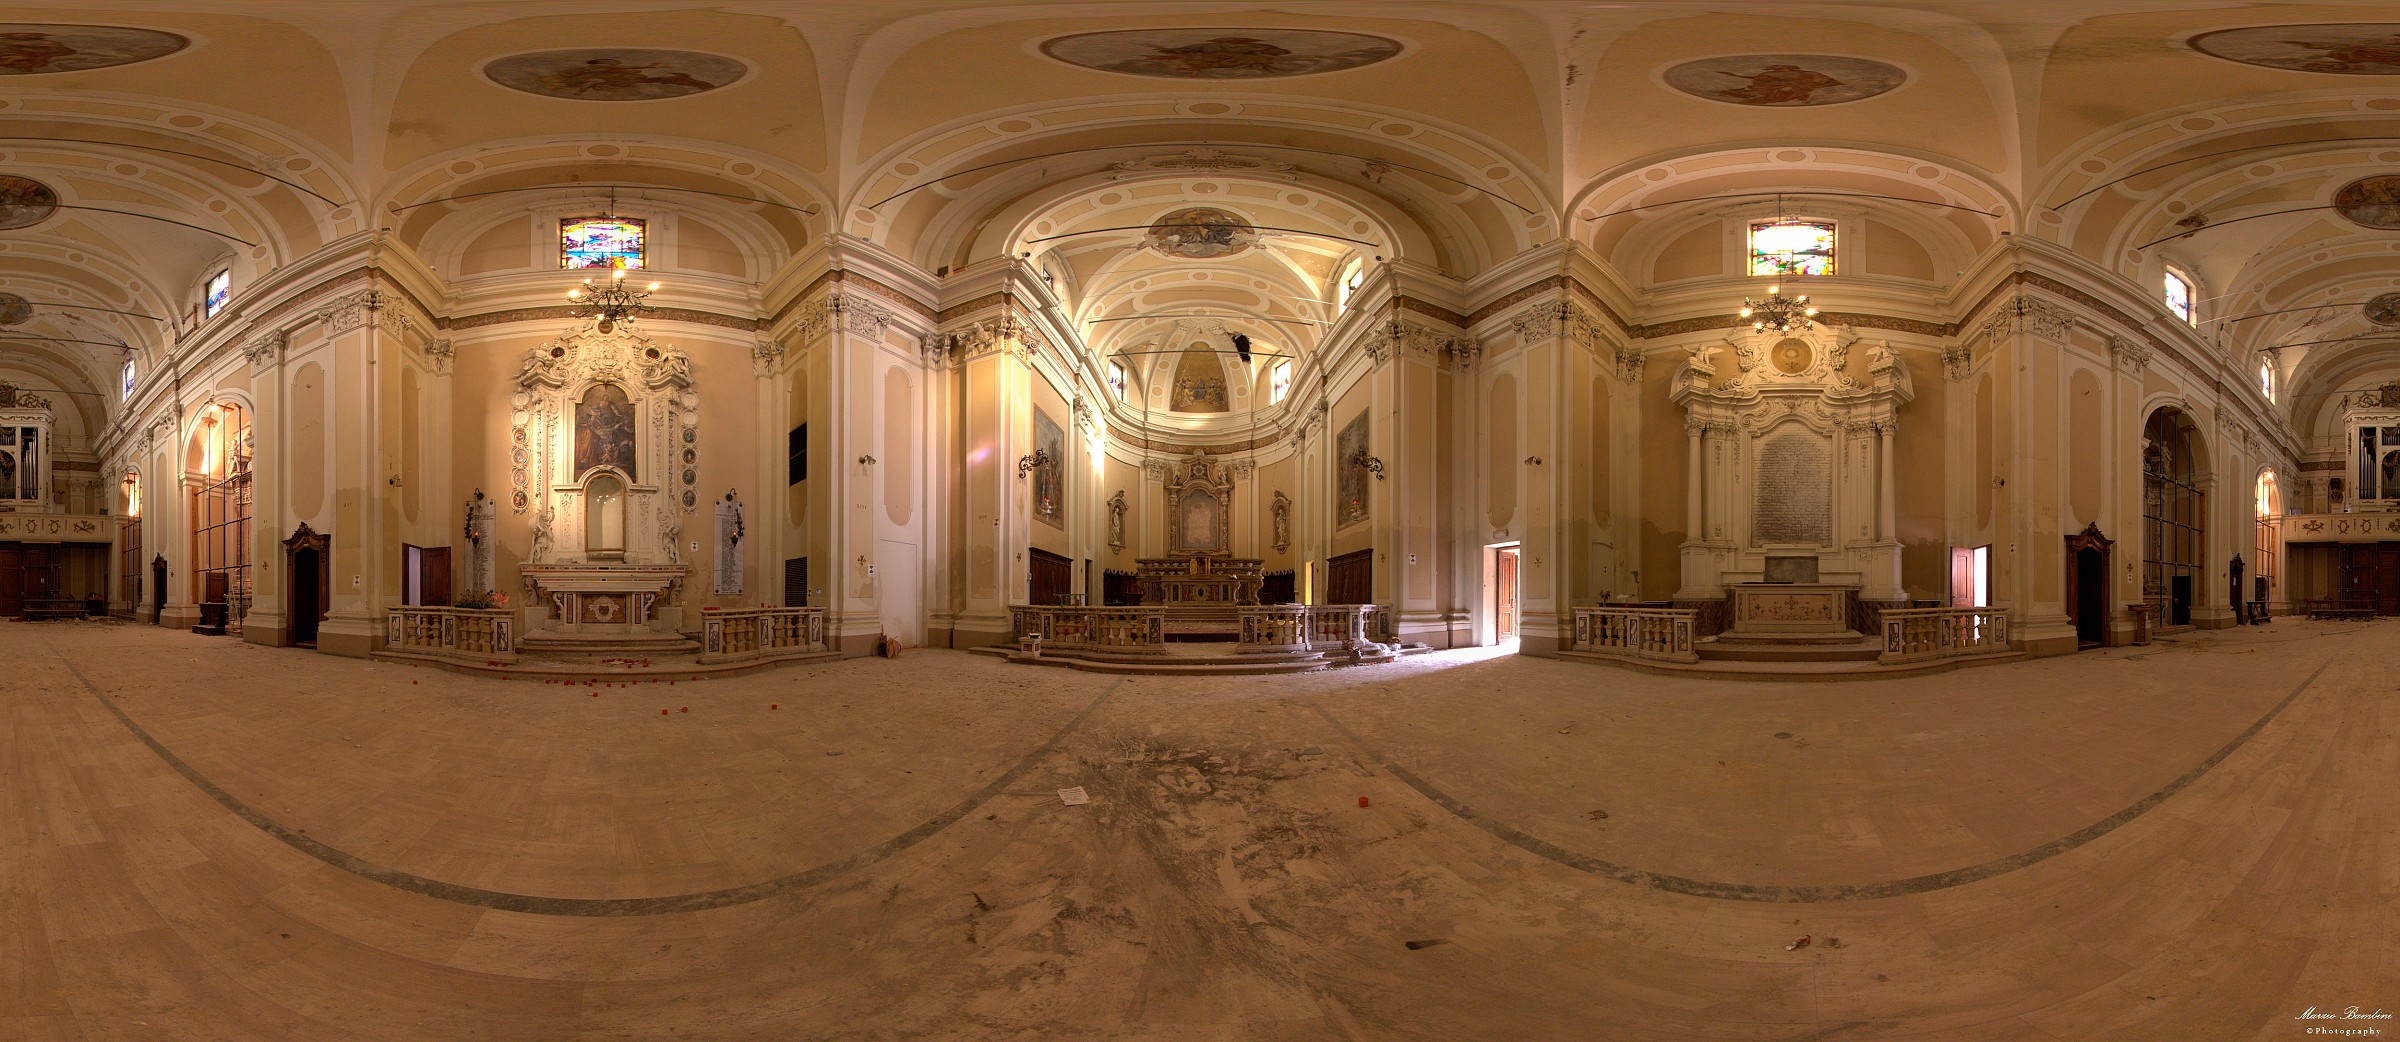 Poggio Rusco, the Church after the earthquake of 2012...